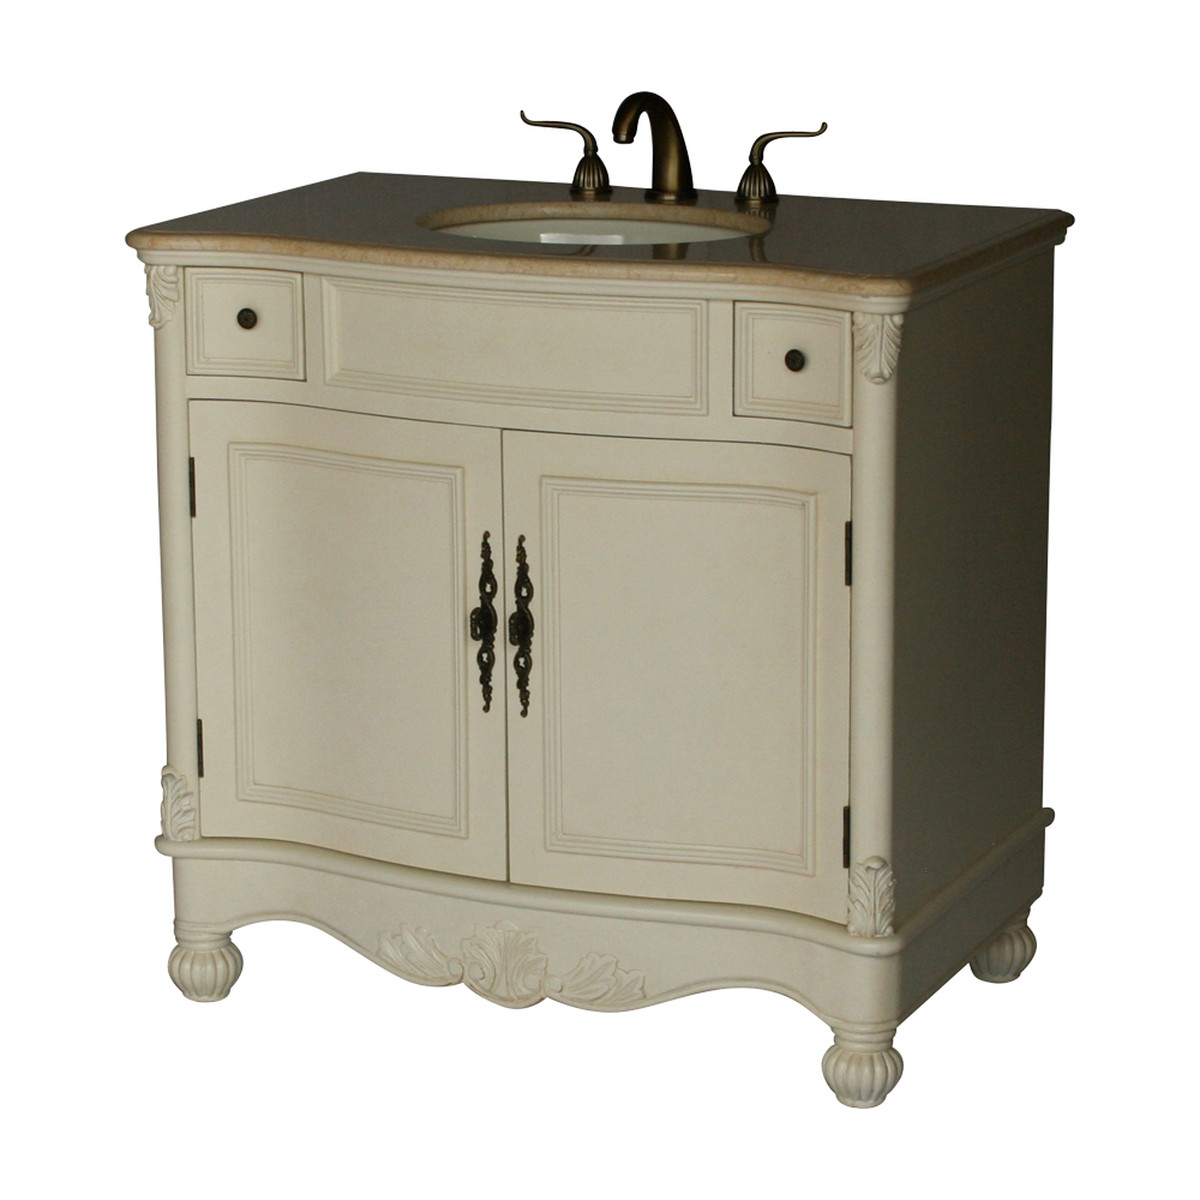 "36"" Adelina Antique Style Single Sink Bathroom Vanity with Beige Stone Countertop and Antique White Finish"